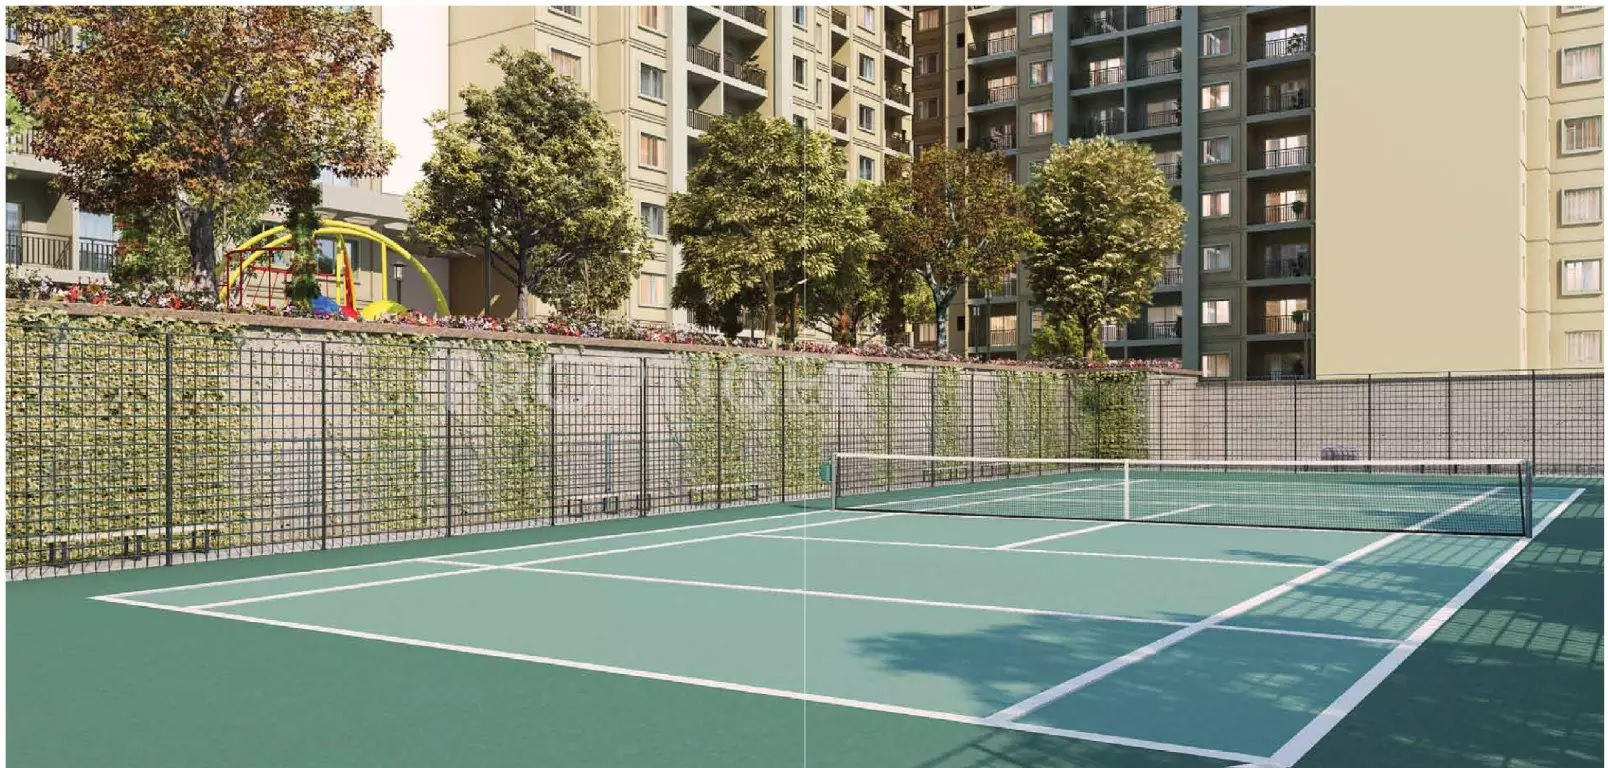 brigade northridge phase ii project amenities features2